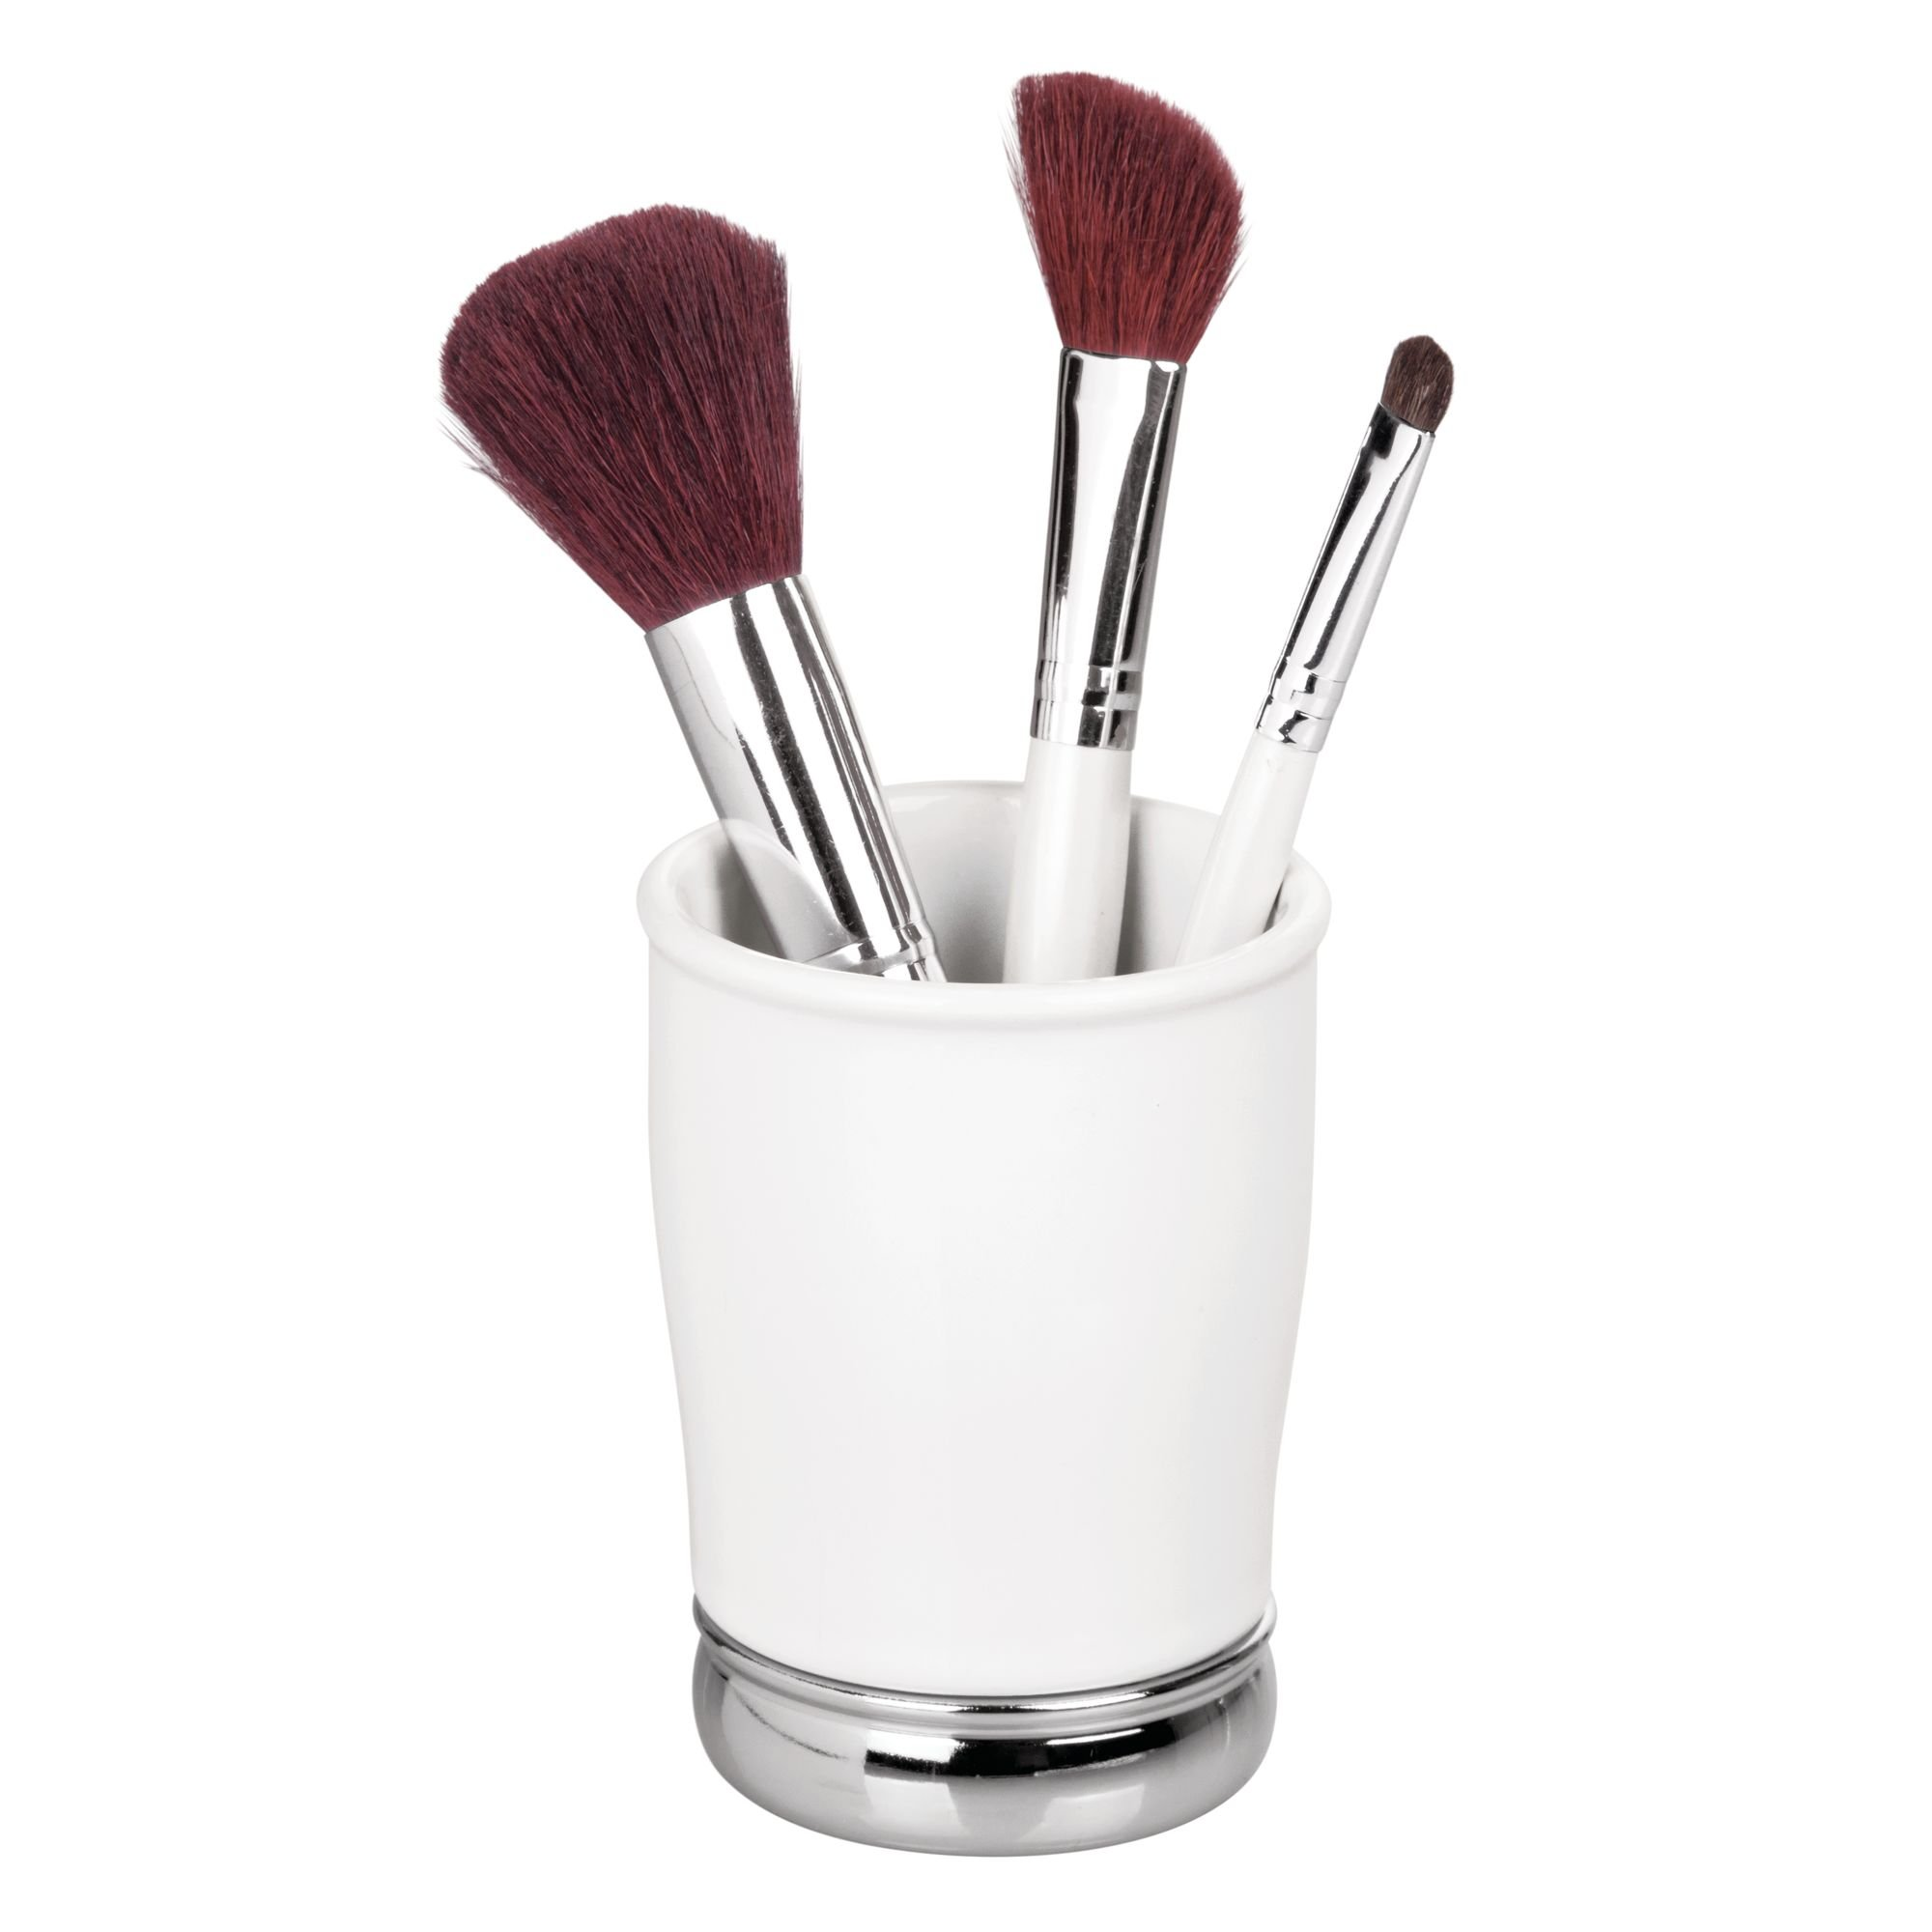 InterDesign York Ceramic and Metal Tumbler, Makeup Brush Toothbrush Holder Cup for Bathroom, Countertop, Desk, Dorm, College, and Vanity, 3.25'' diameter x 4.25'', White and Chrome by iDesign